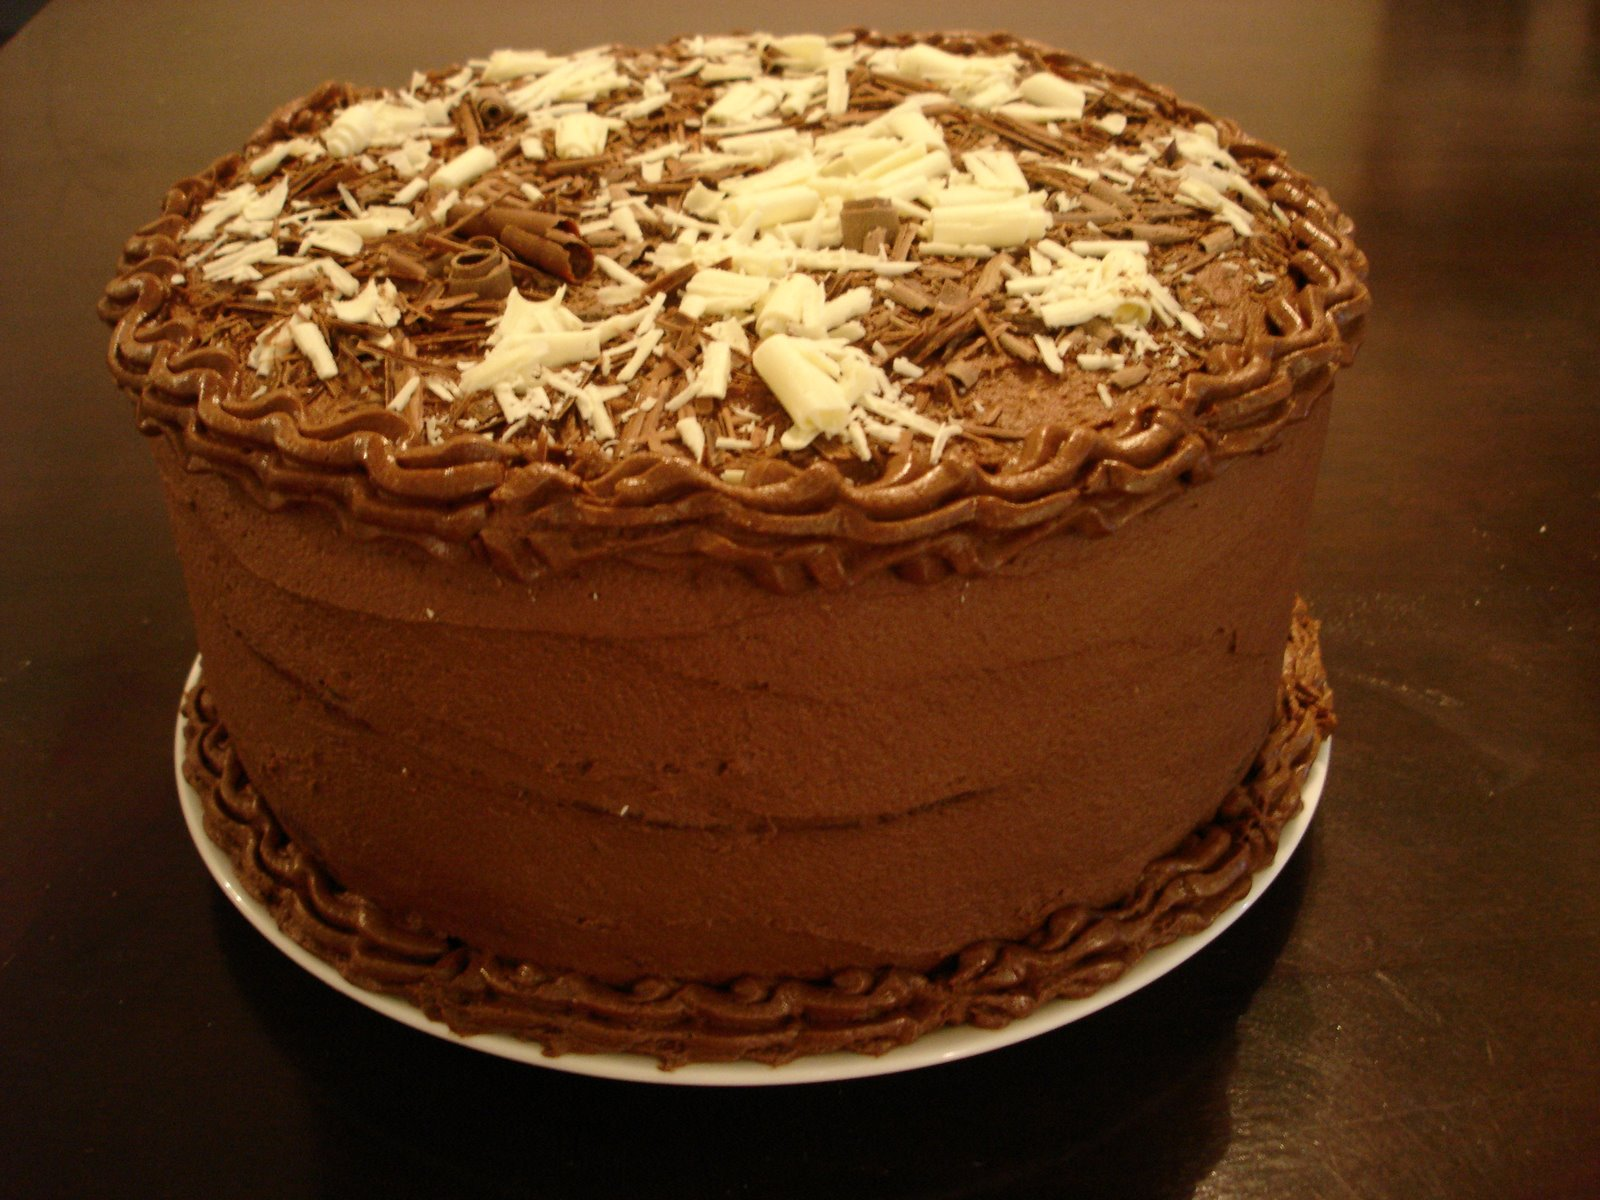 This Chocolate Cake Is 3 Layers Dark Milk And White Filled With Mouse